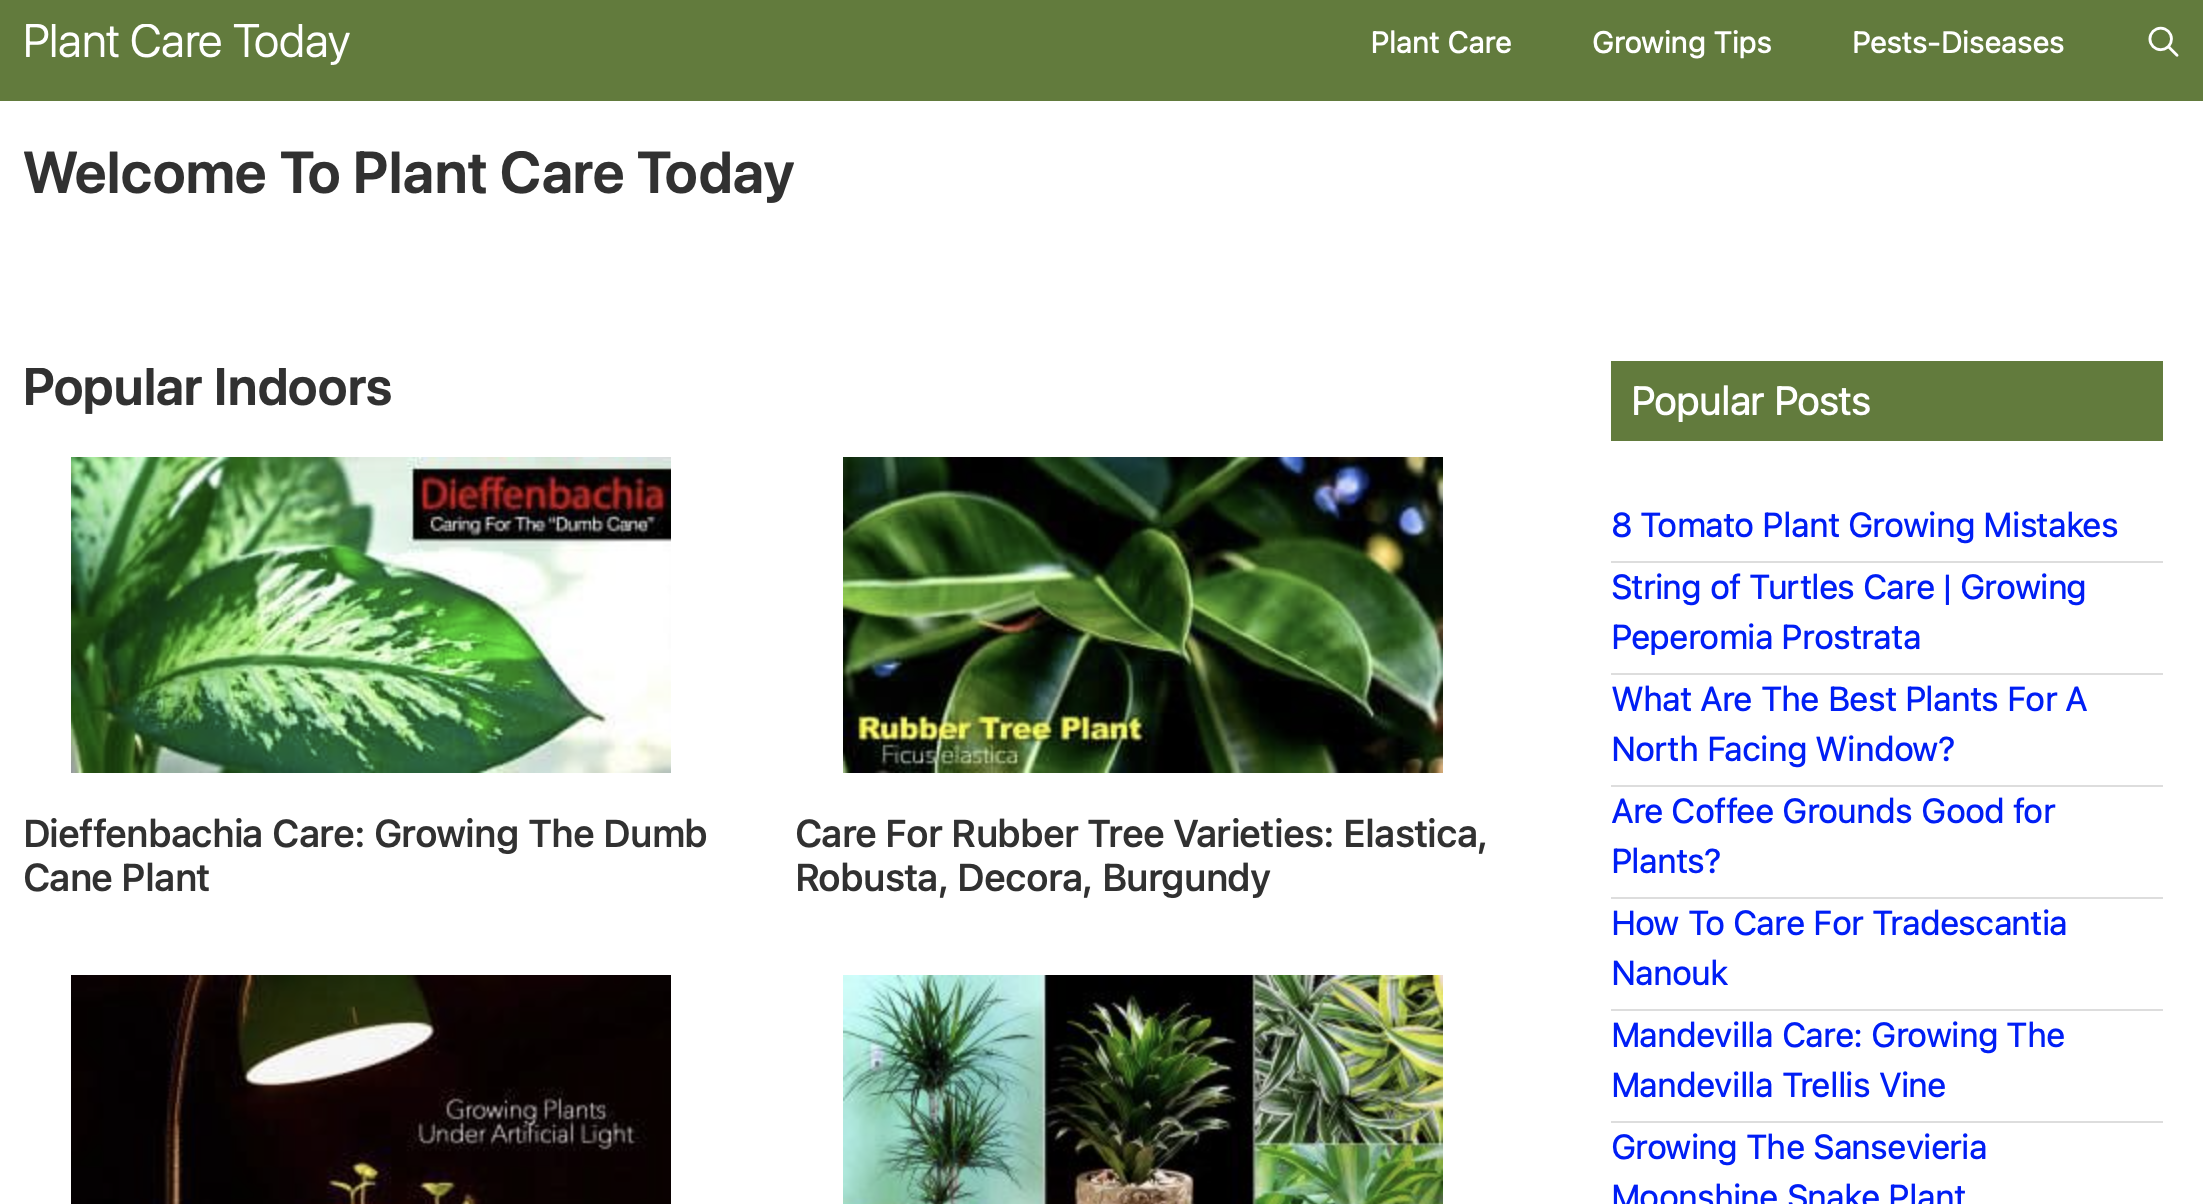 Plant Care Today